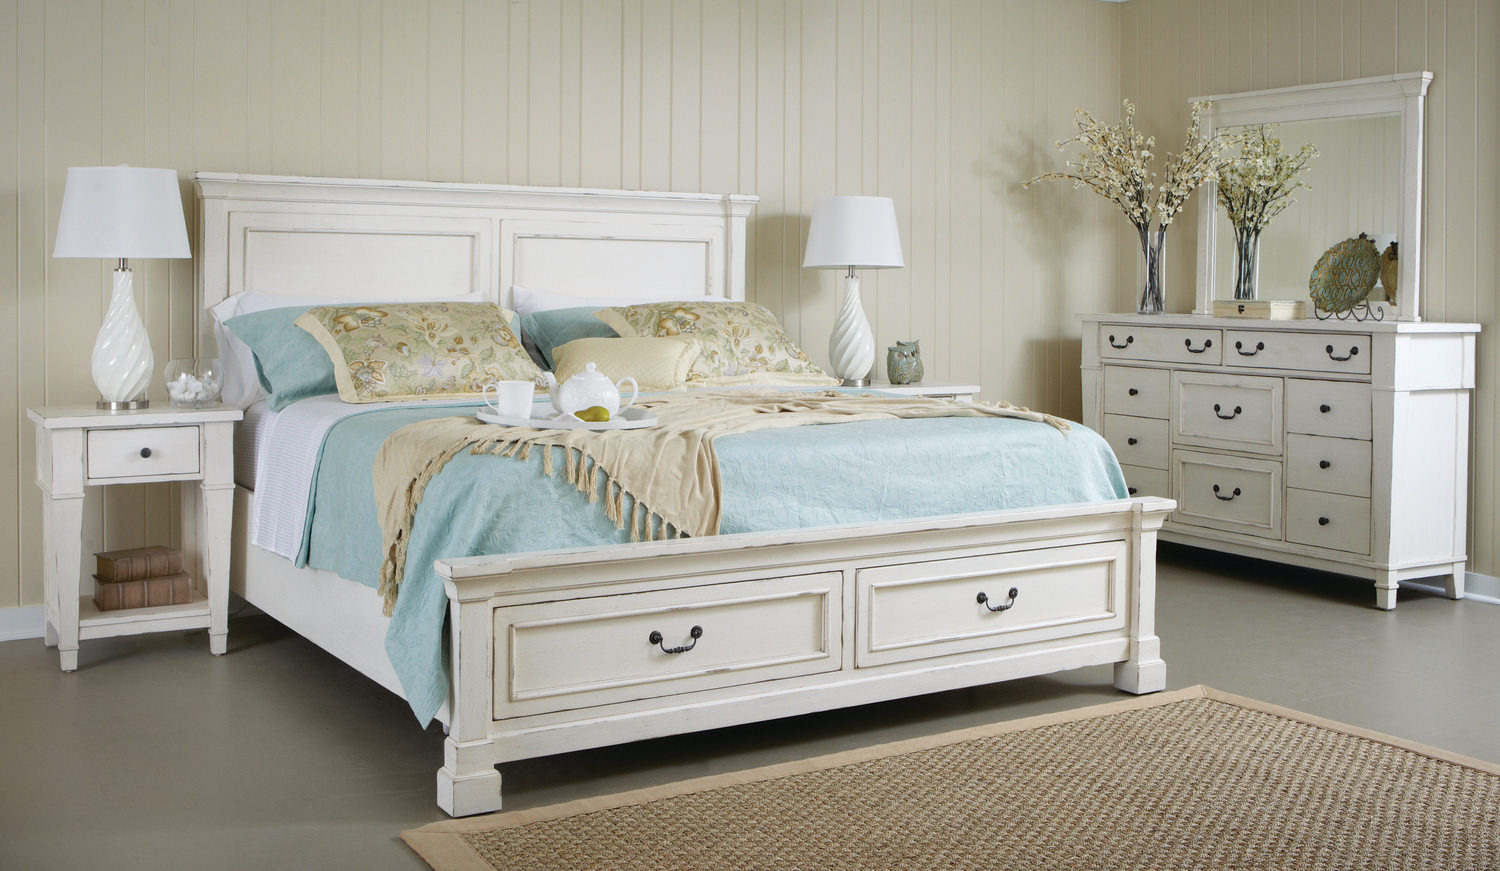 king nightstand cambridge sets bedroom bed dresser elegance champagne mirror p chest and piece cm suite